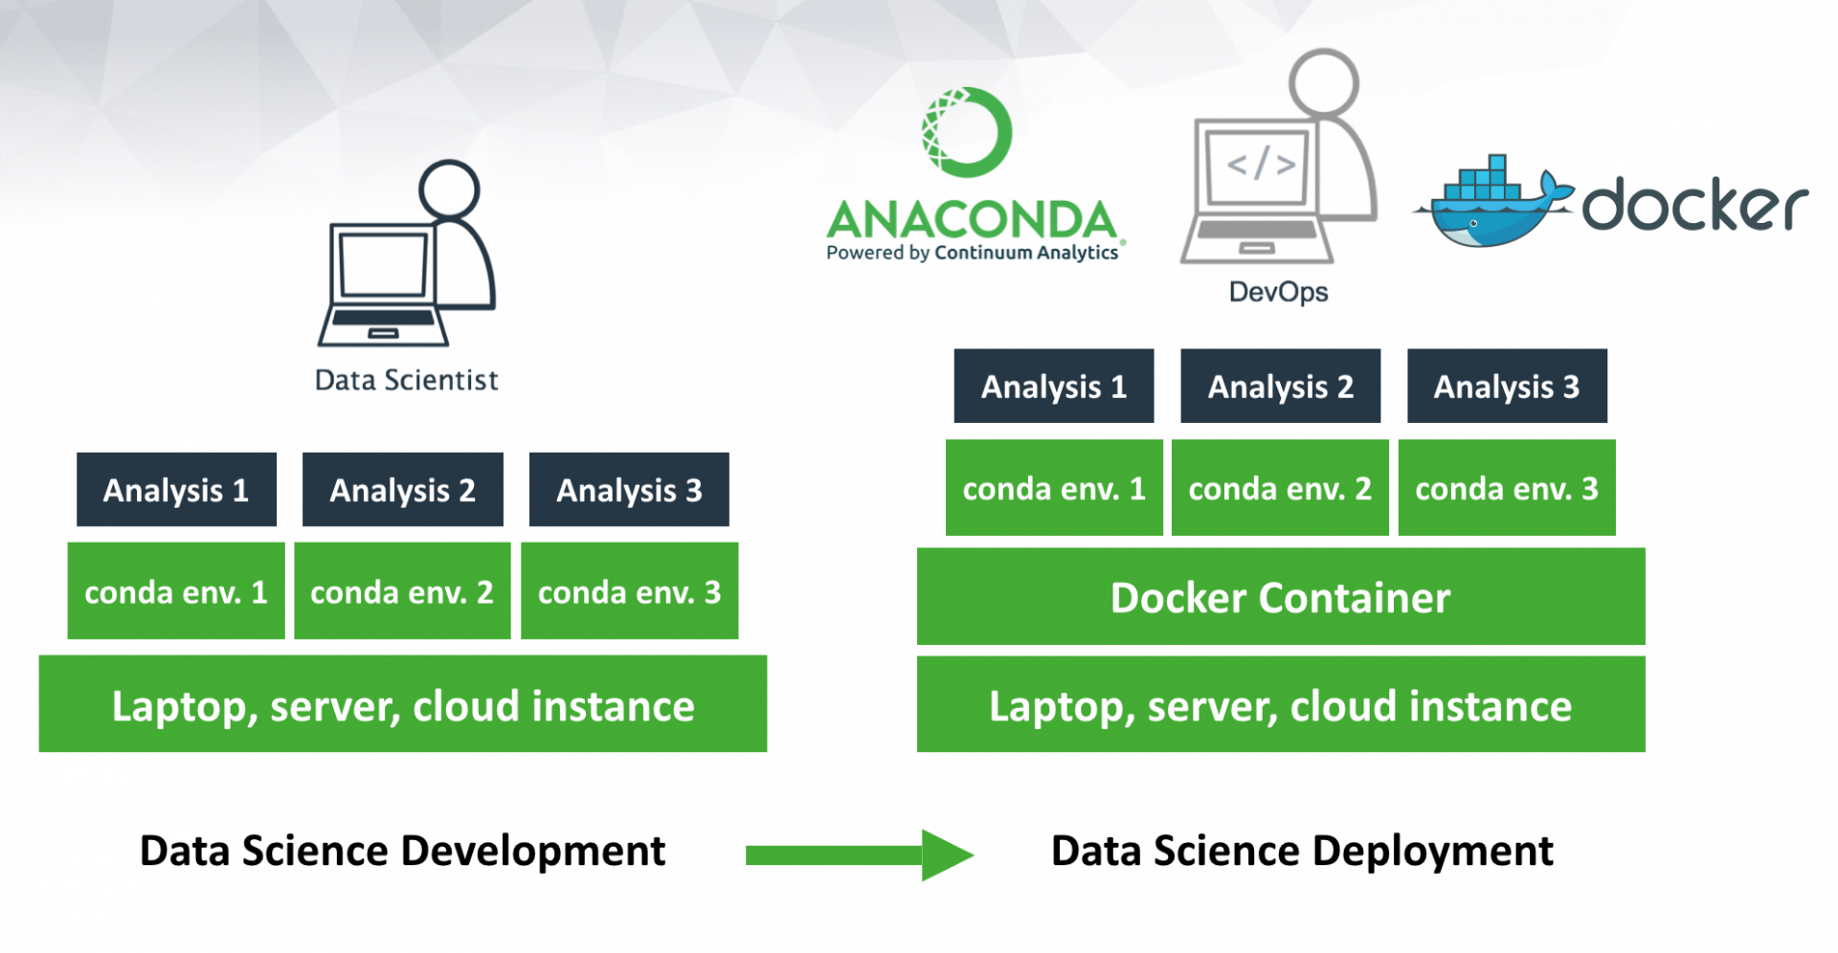 Getting started with Anaconda & Docker - Patrick Michelberger - Medium